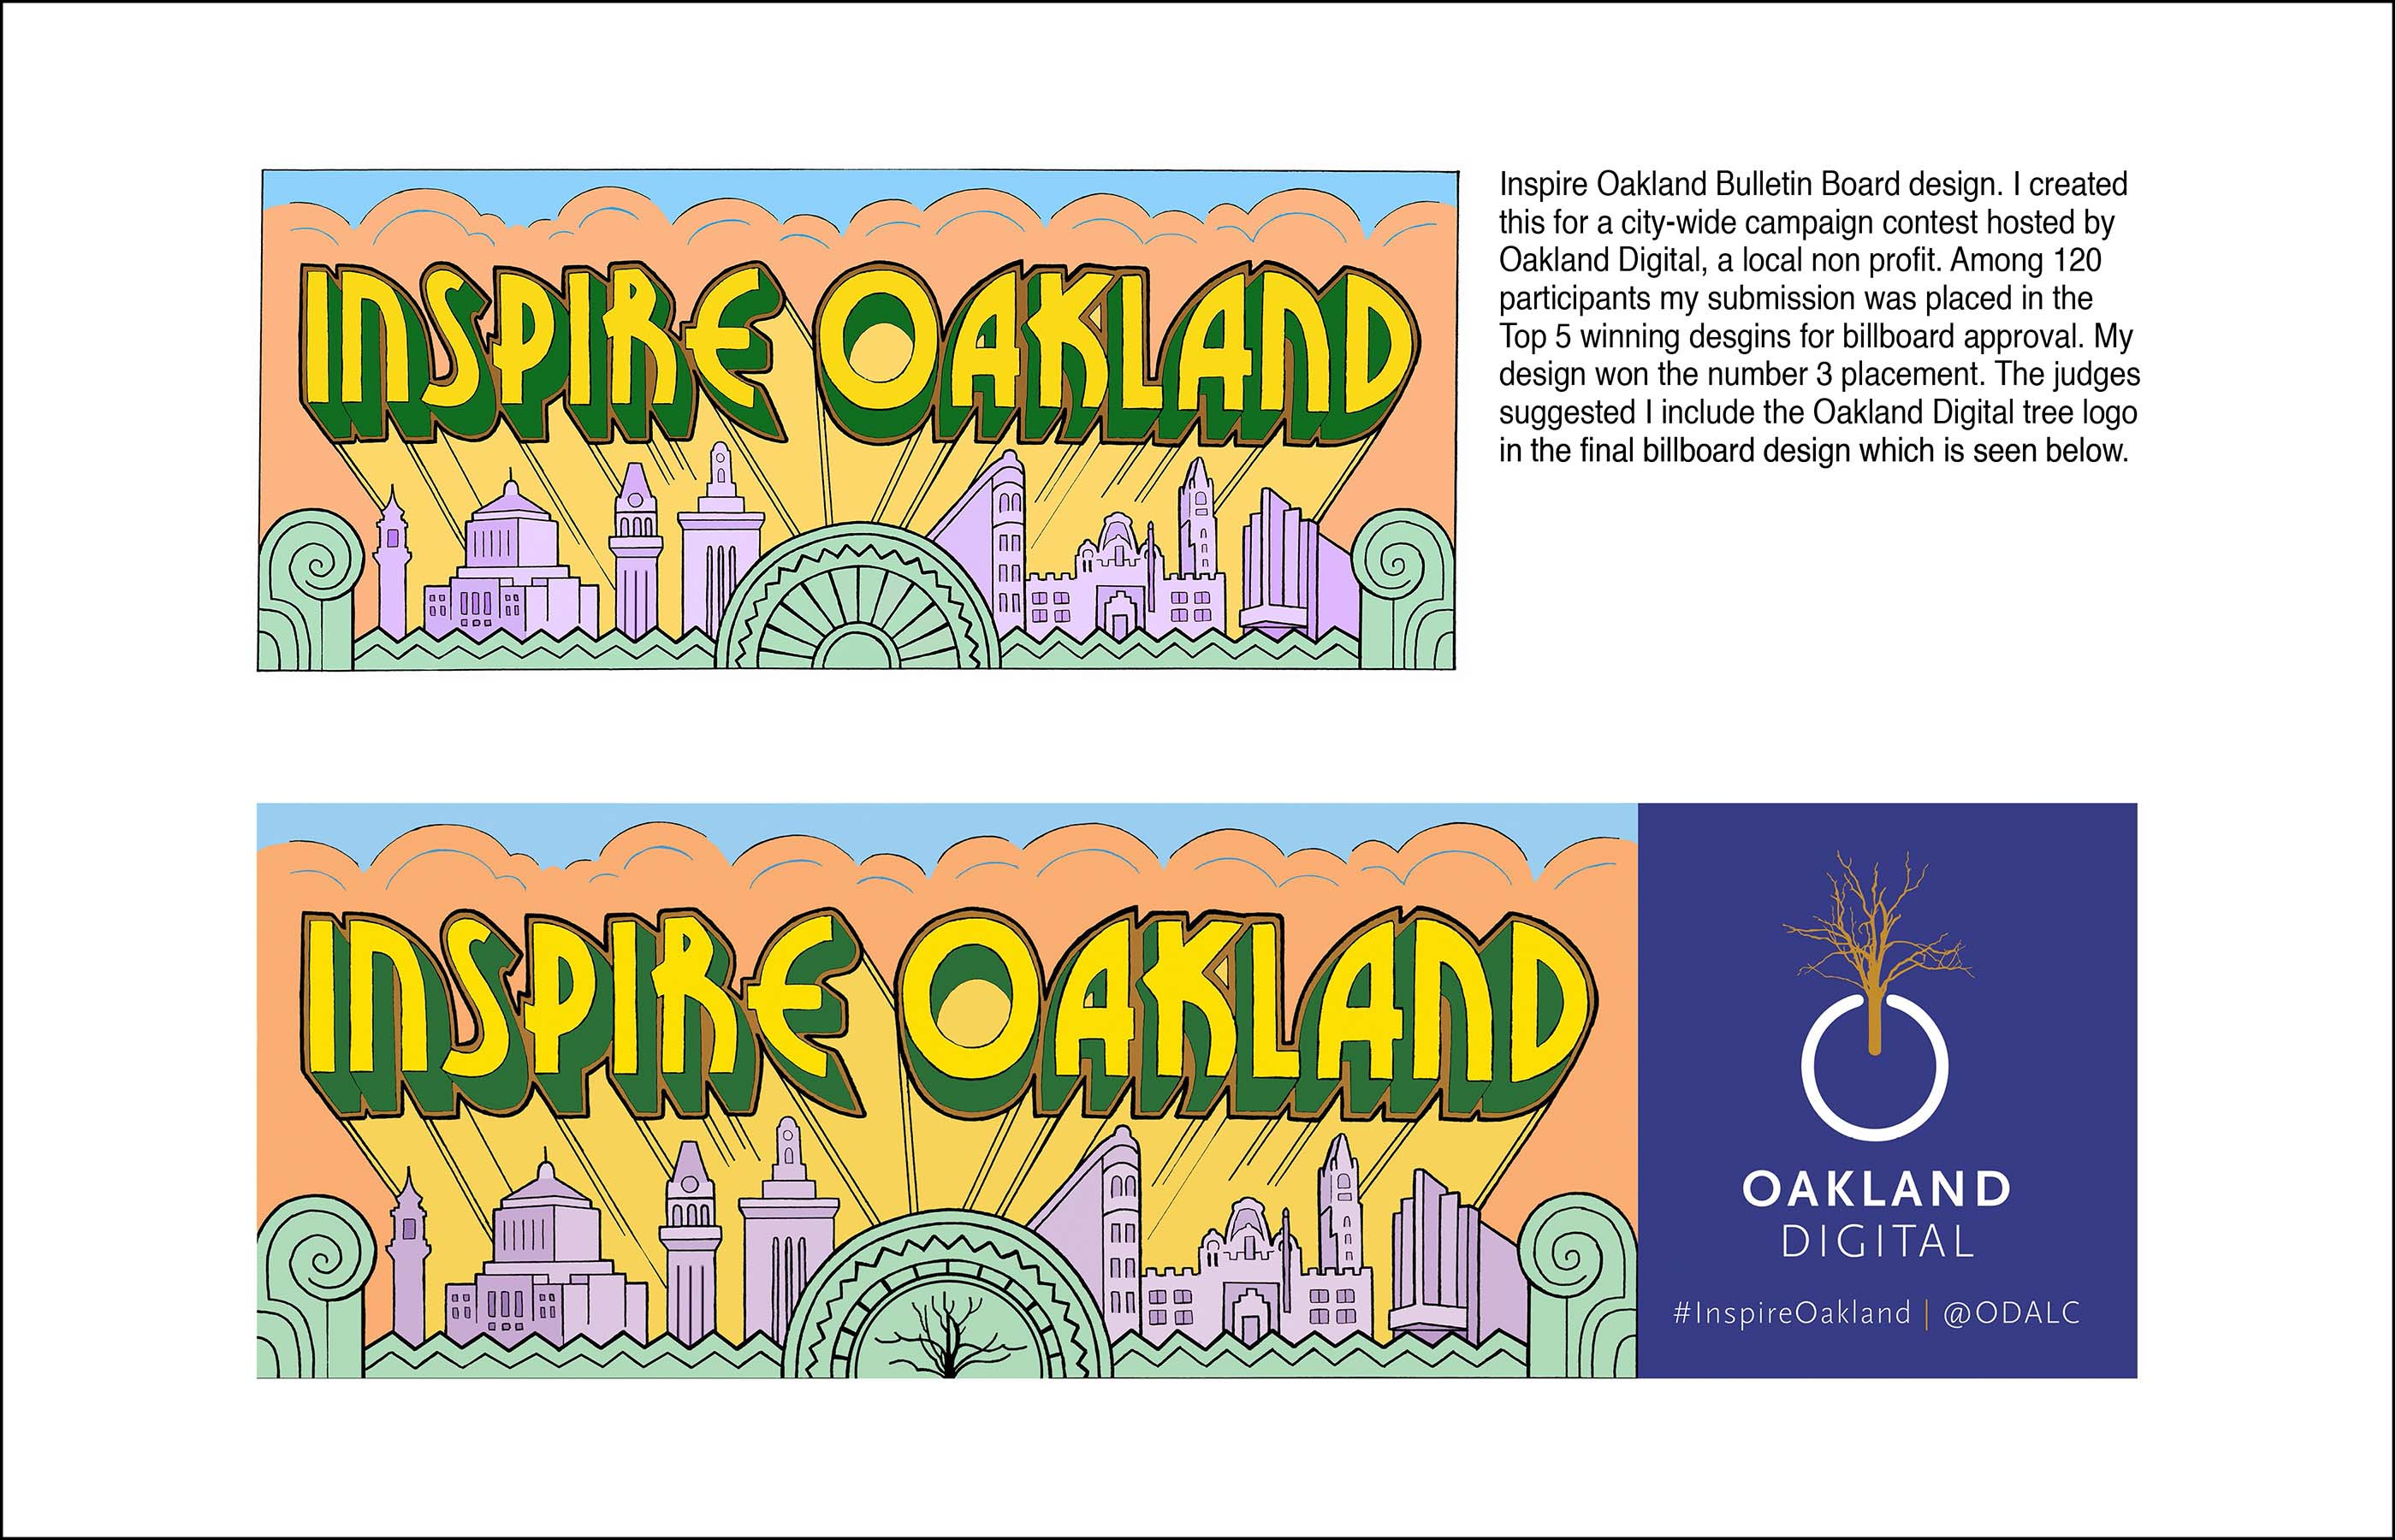 Click here to see more details about the Inspire Oakland billboard project